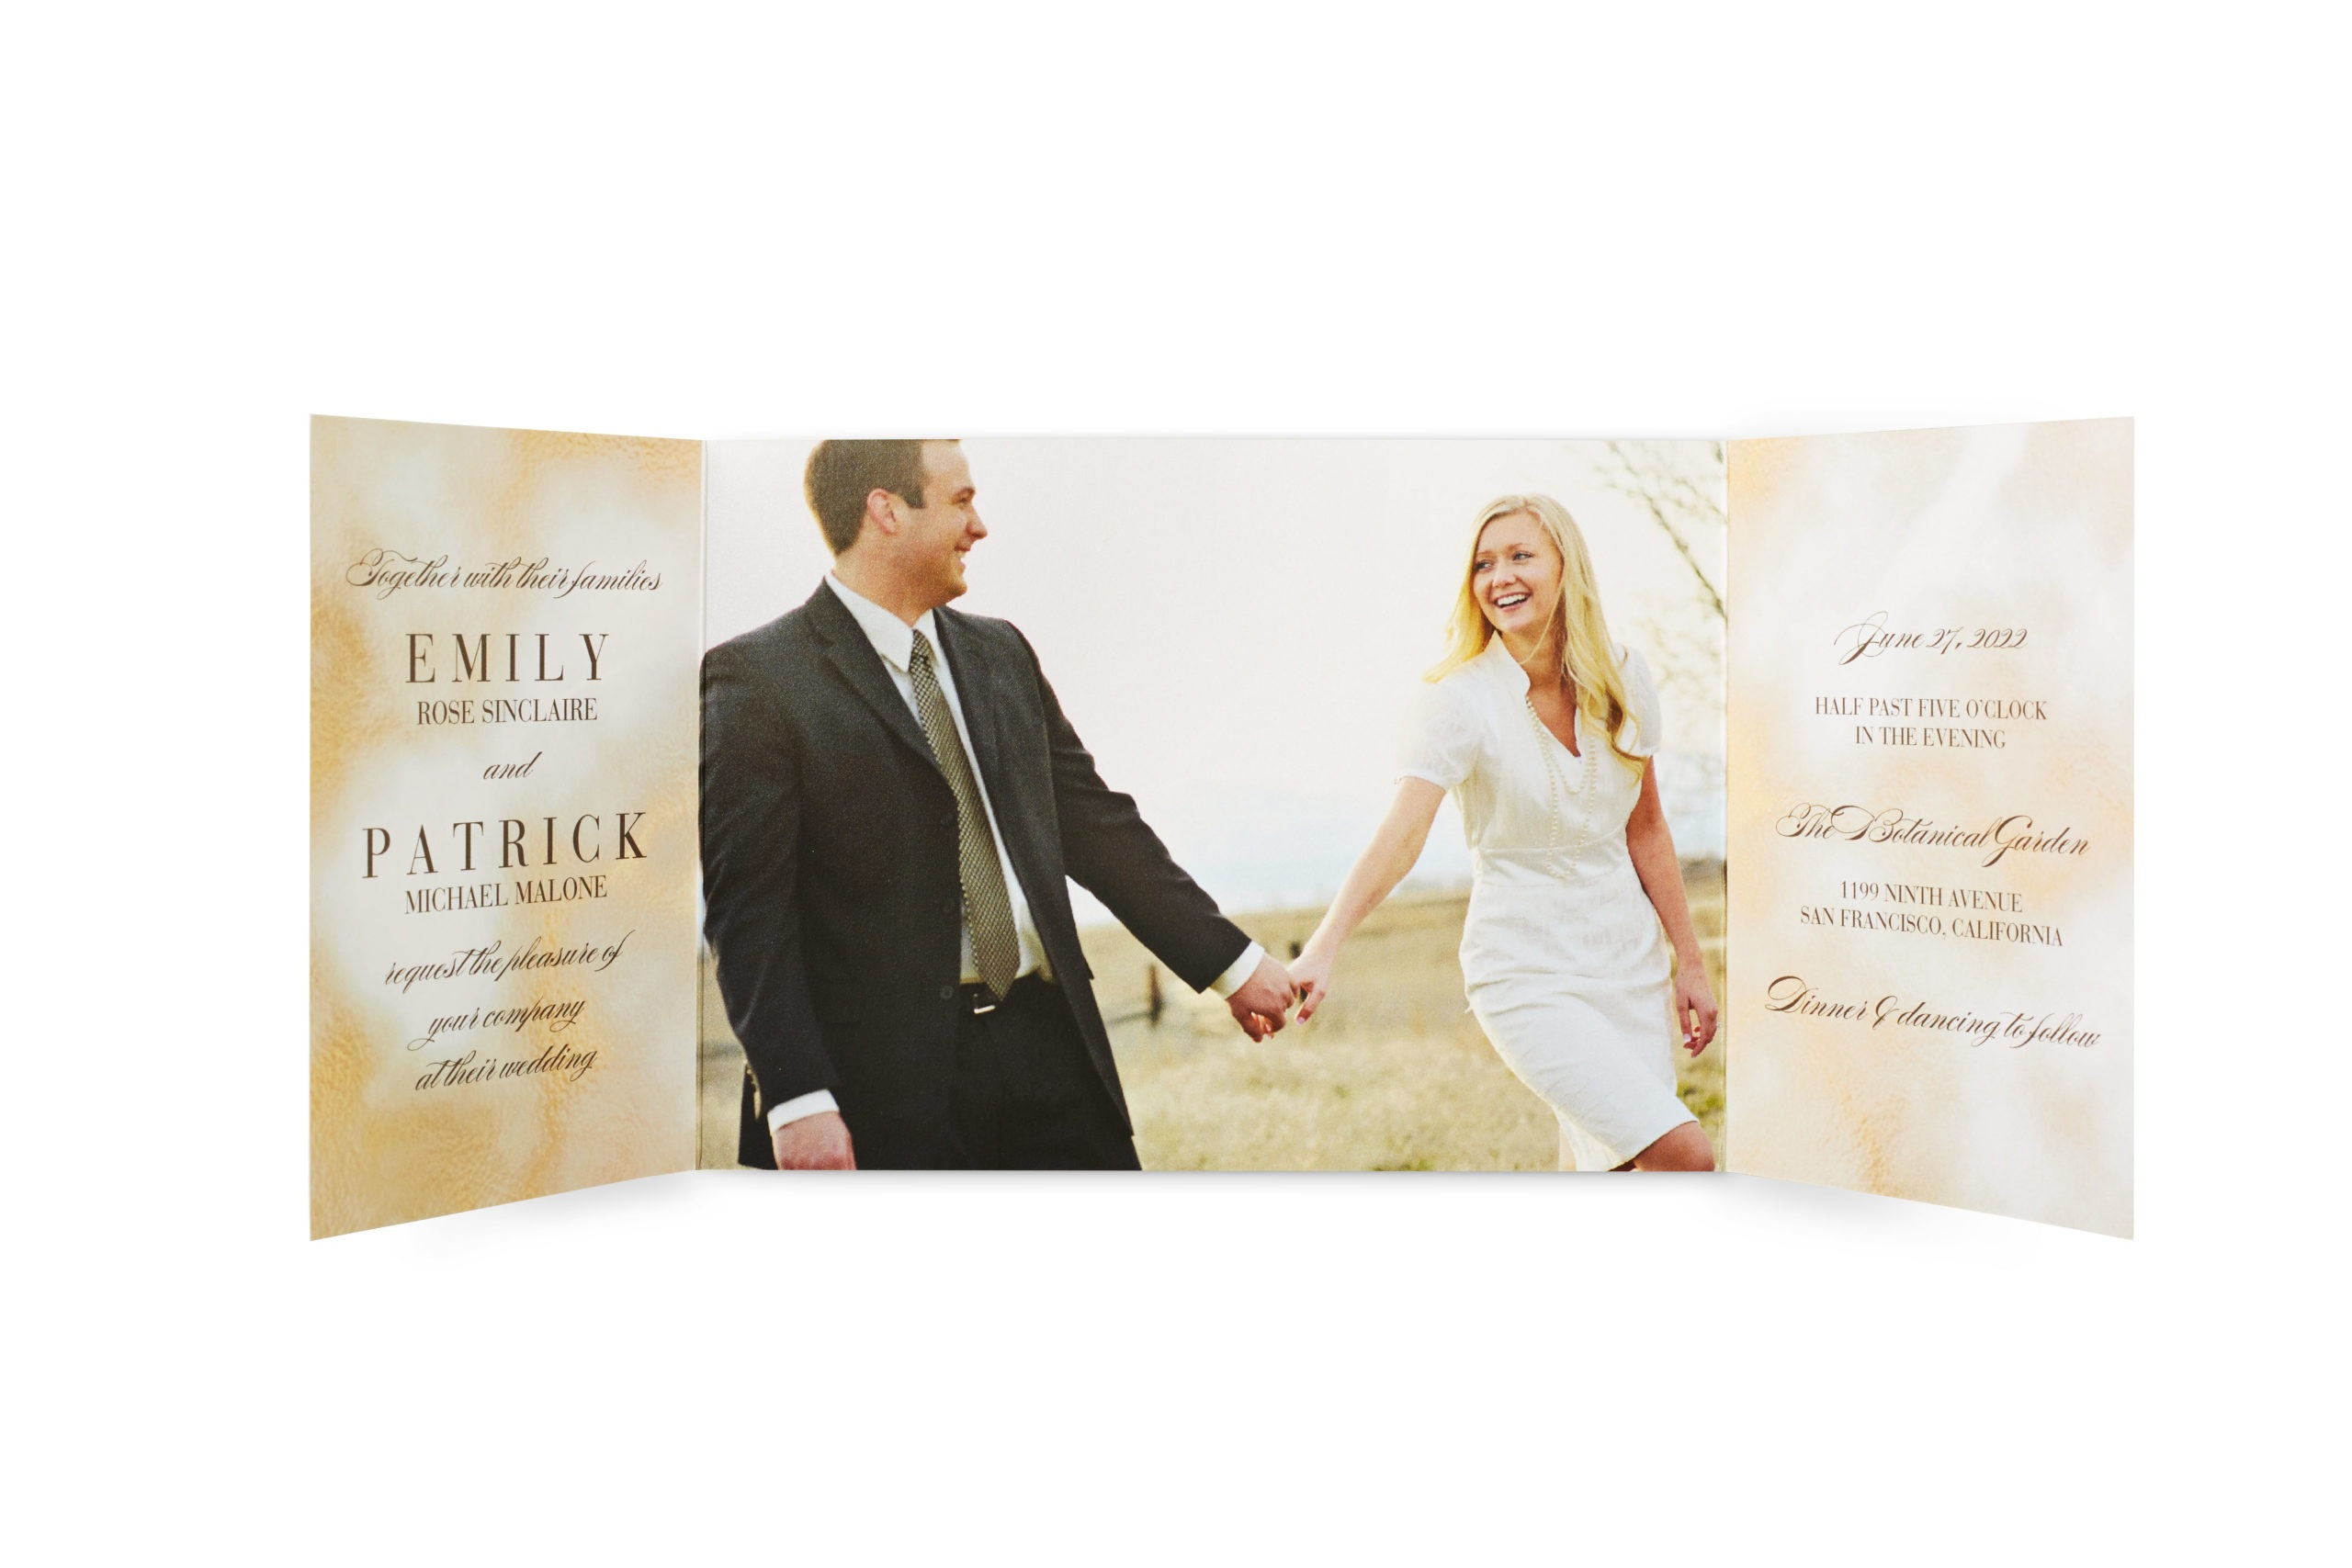 Wedding stationery tri fold with bride and groom holding hands